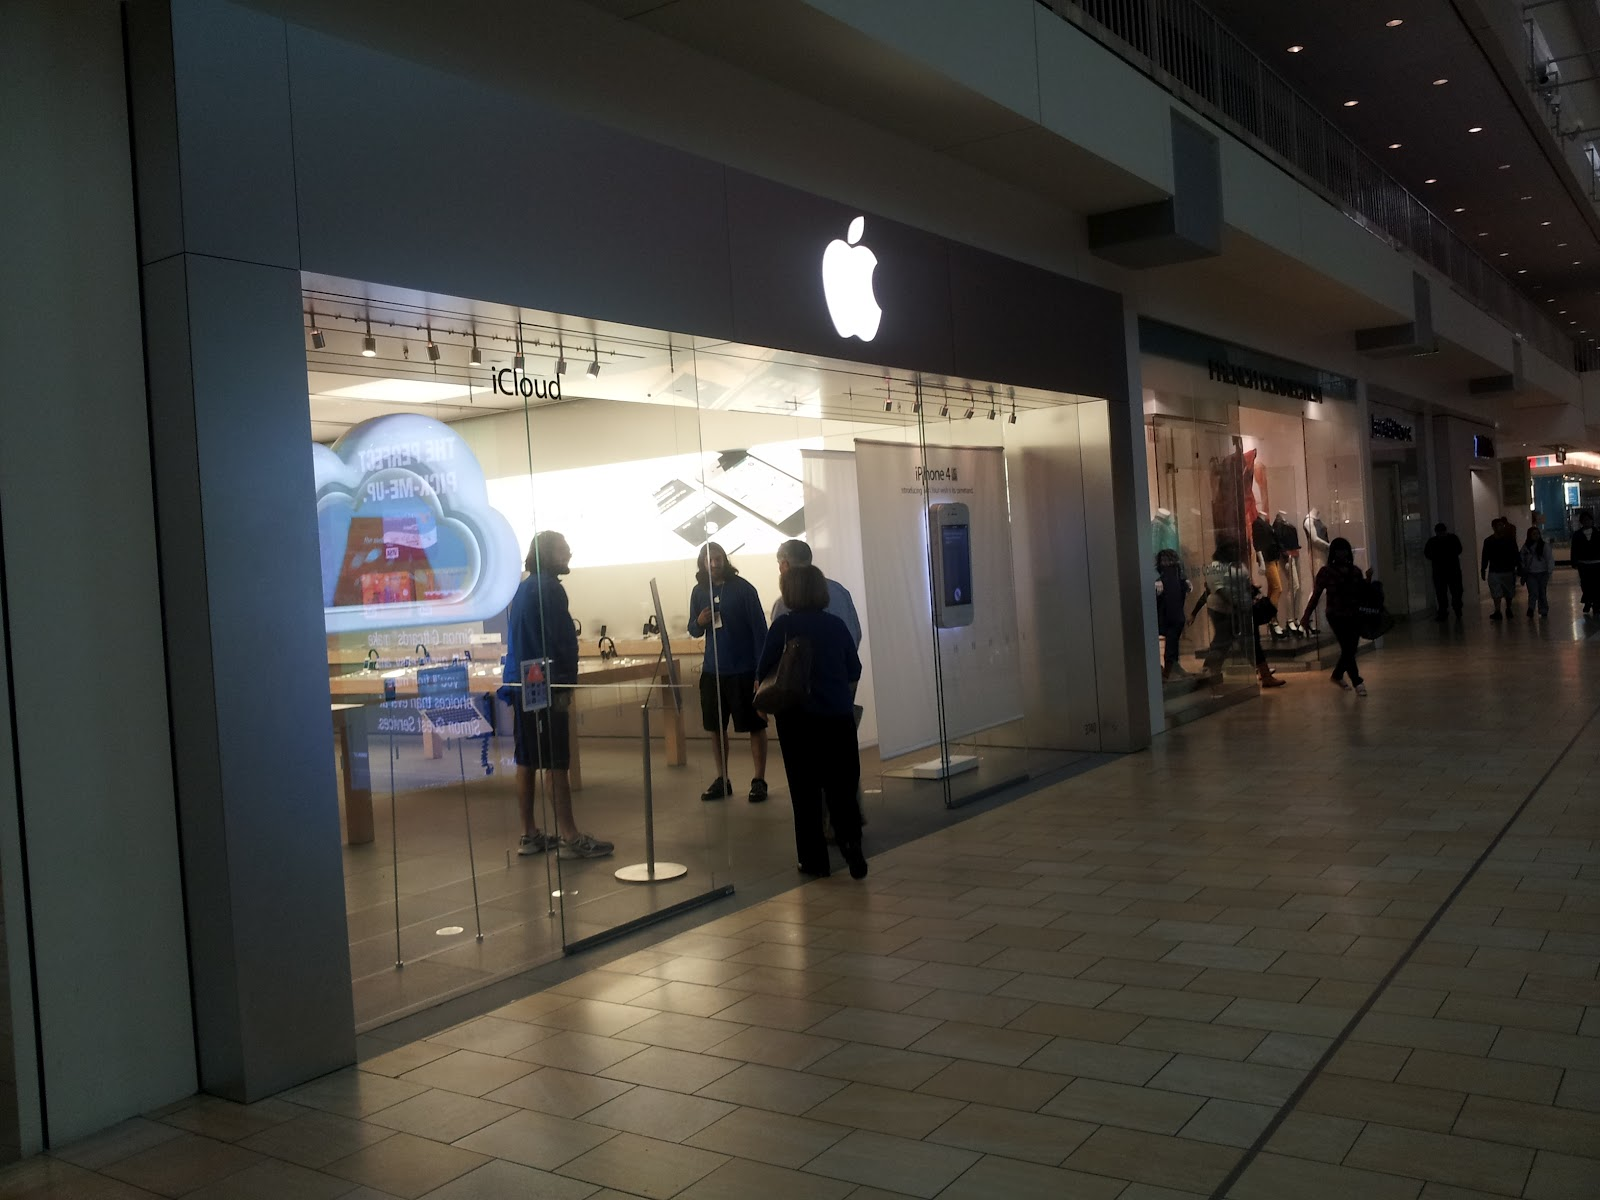 Standing at the entrance of the Apple Store